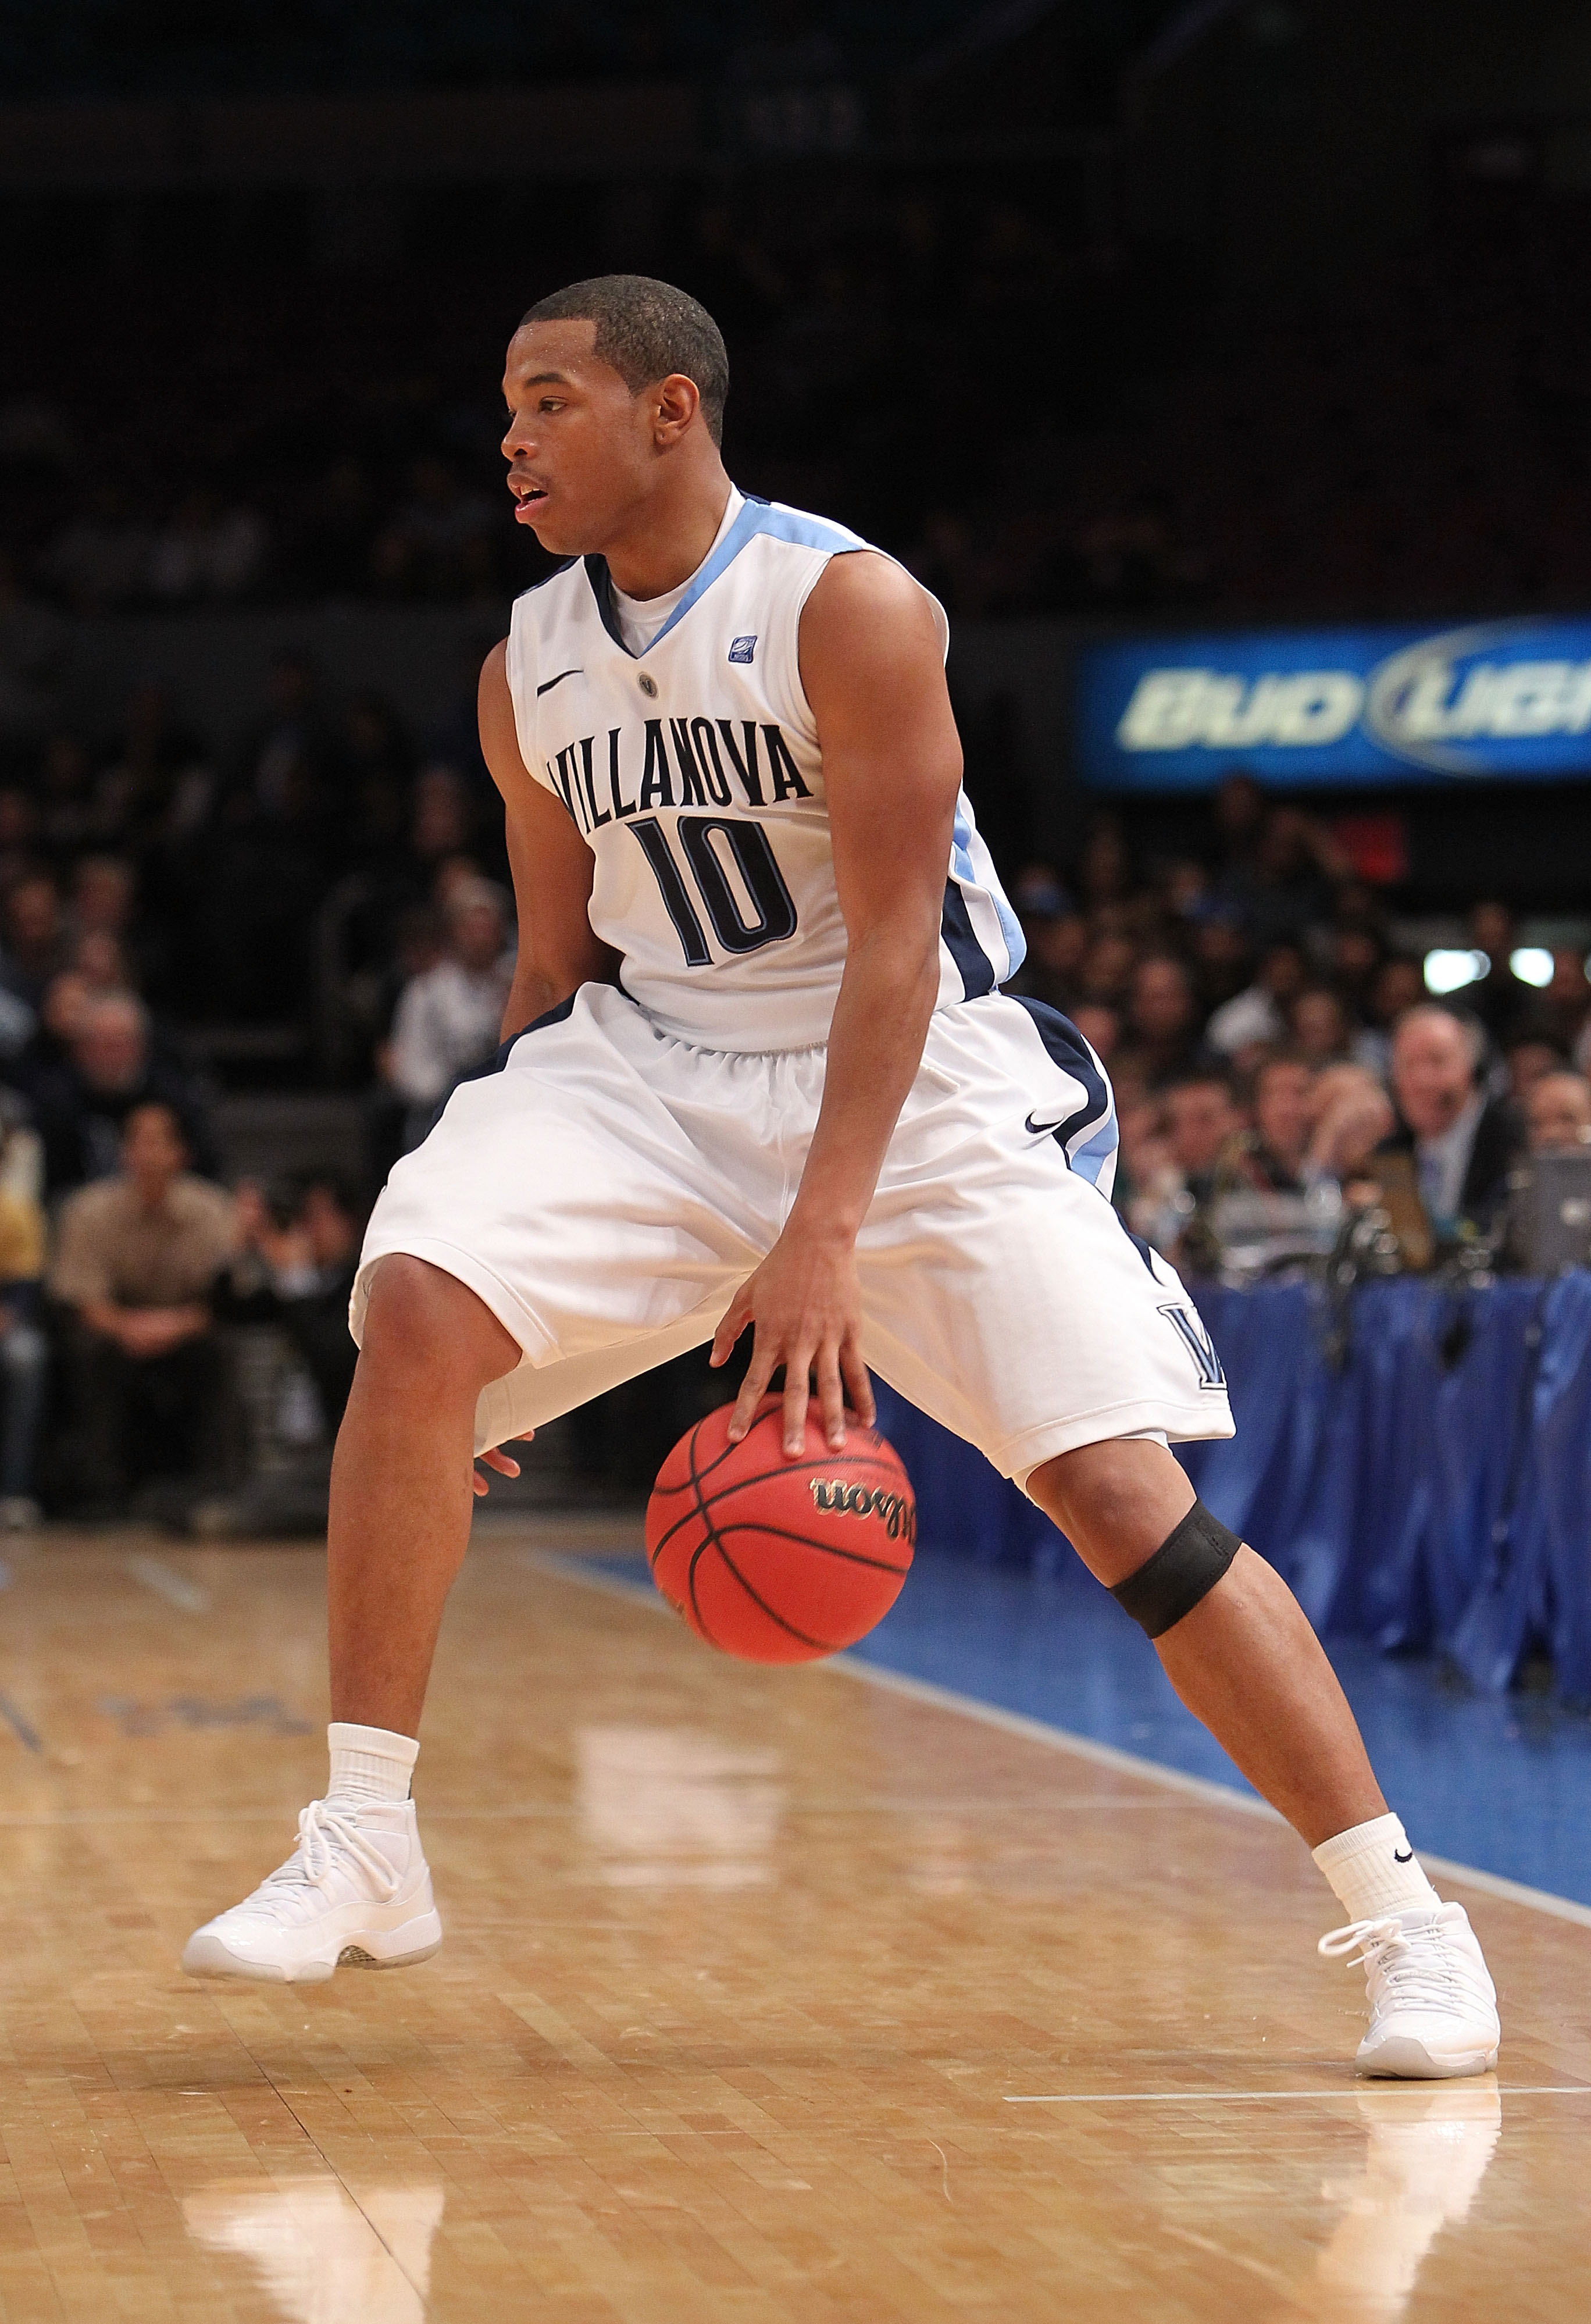 NEW YORK - NOVEMBER 24:  Corey Fisher #10 of the Villanova Wildcats dribbles against the UCLA Bruins during their preseason NIT semifinal at Madison Square Garden on November 24, 2010 in New York City.  (Photo by Nick Laham/Getty Images)